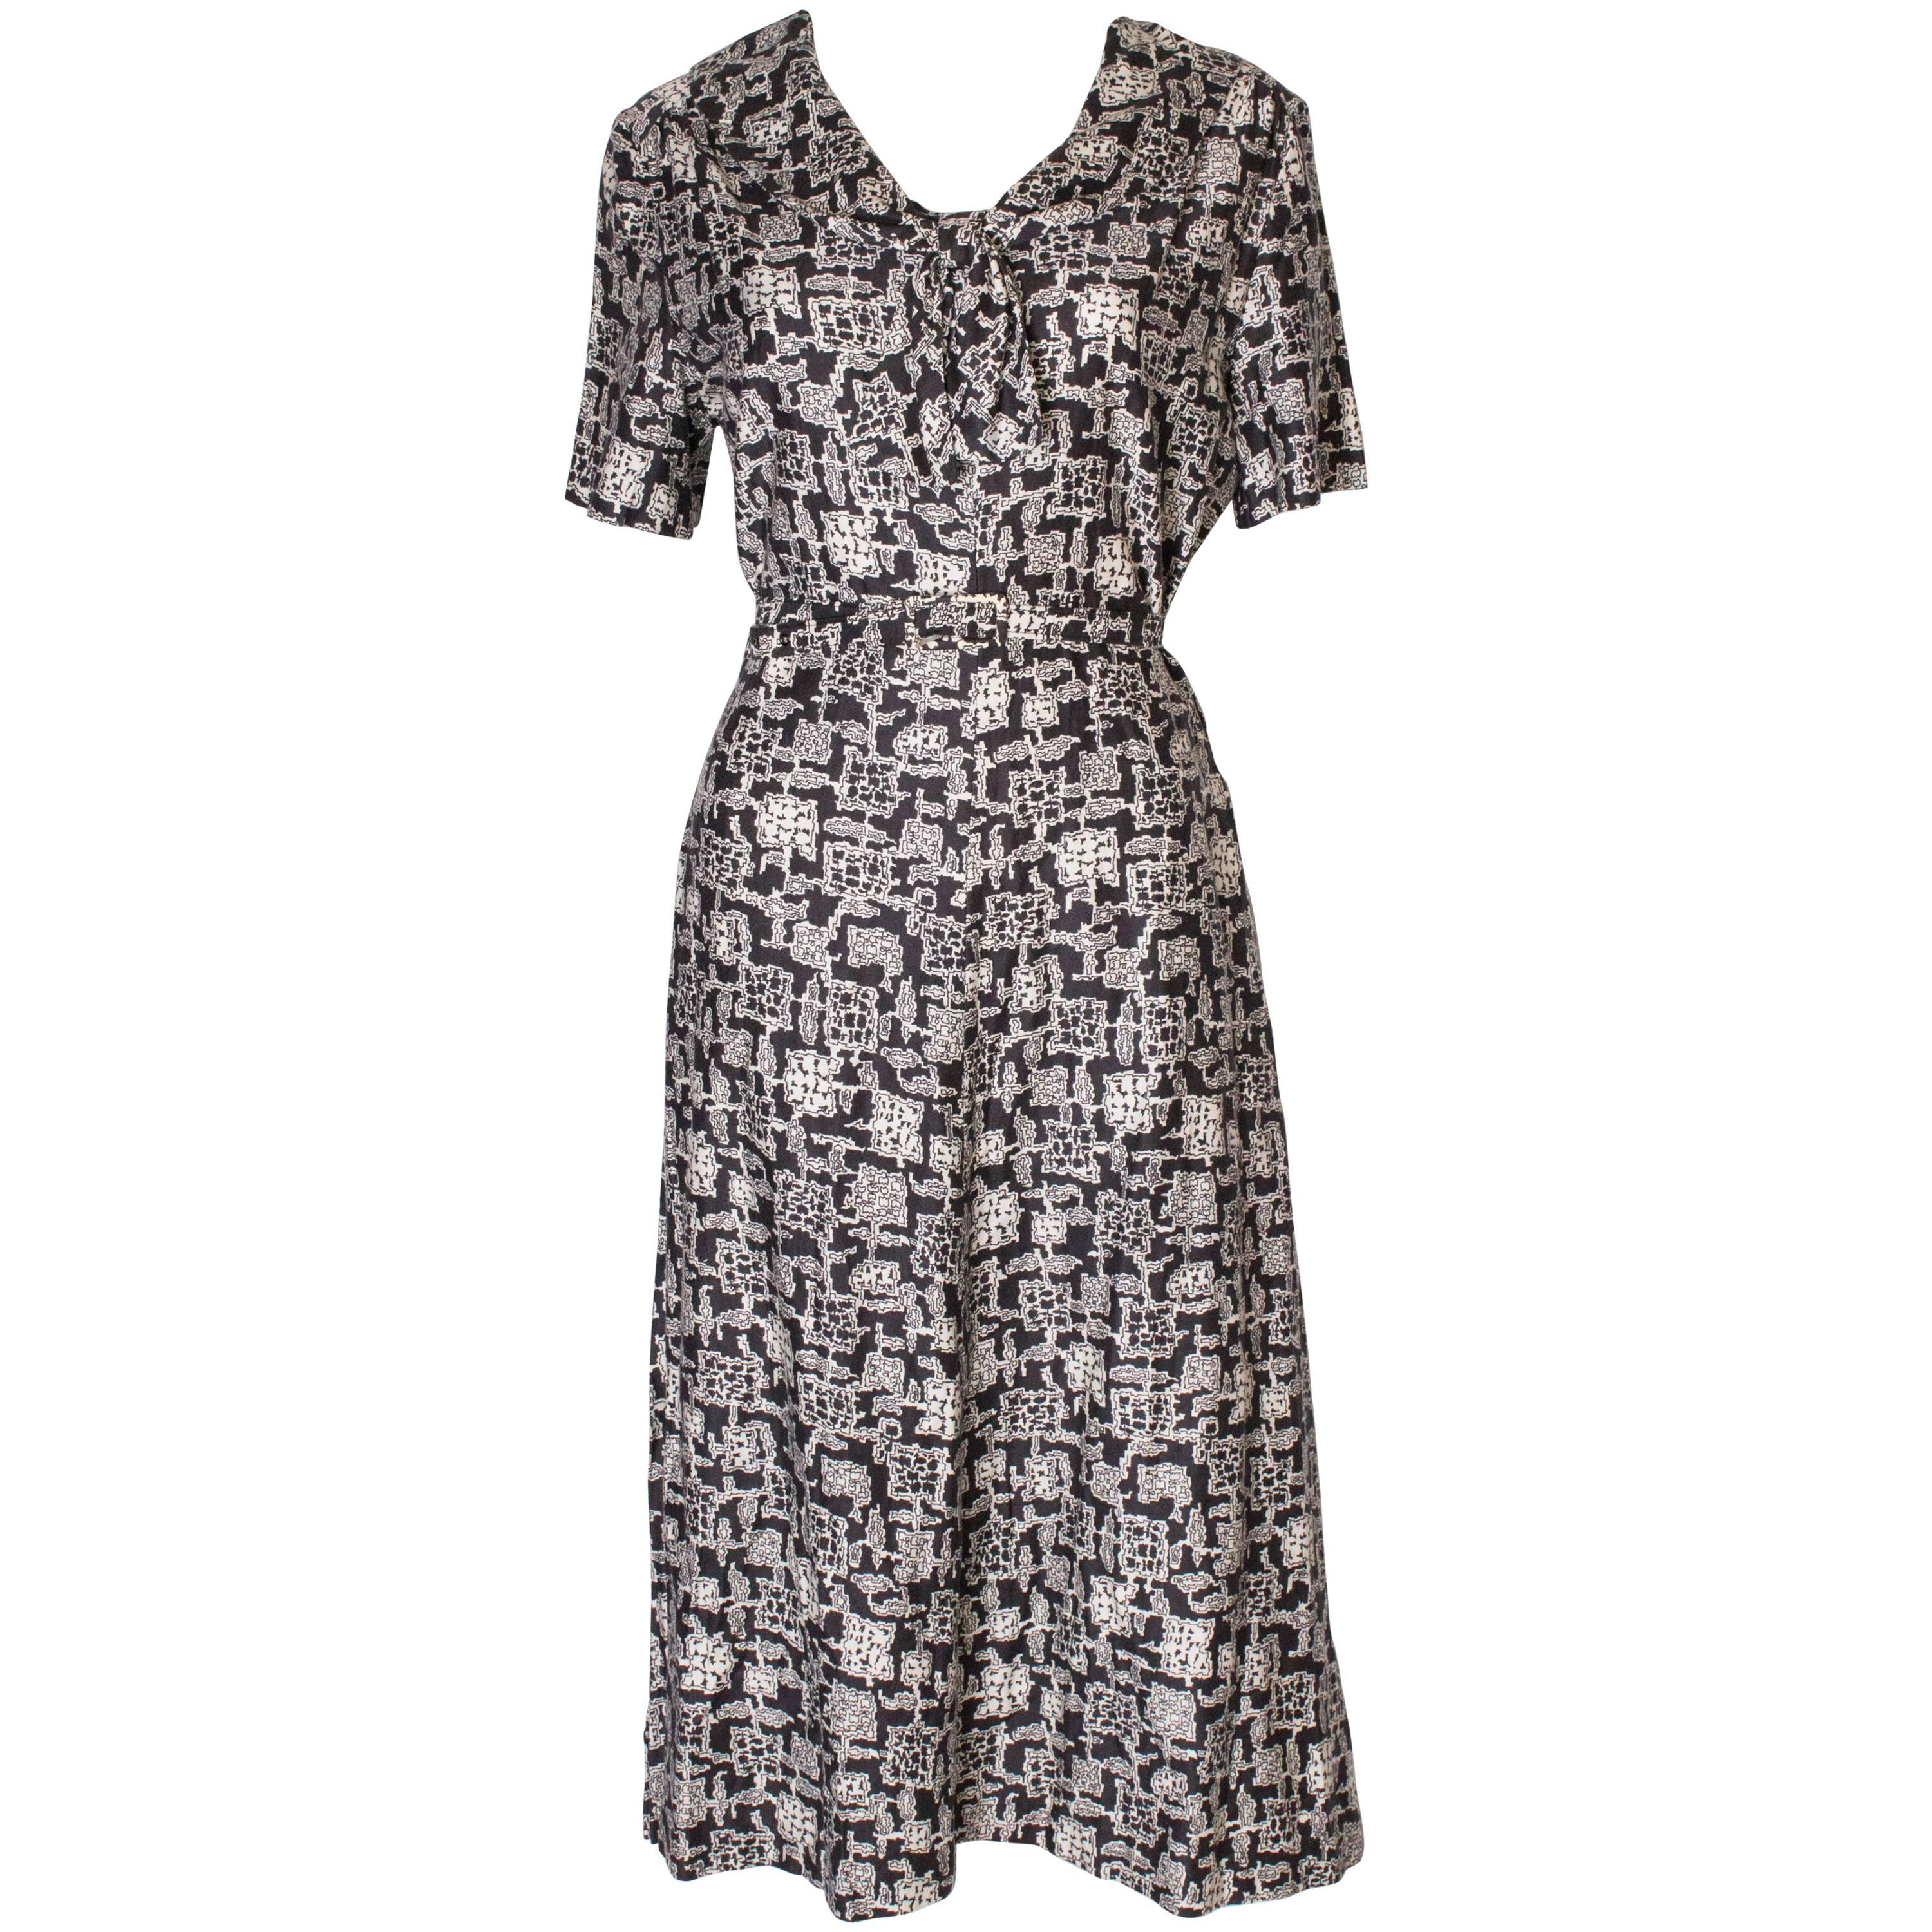 A Vintage 1970s cotton printed day Dress by Horrockses